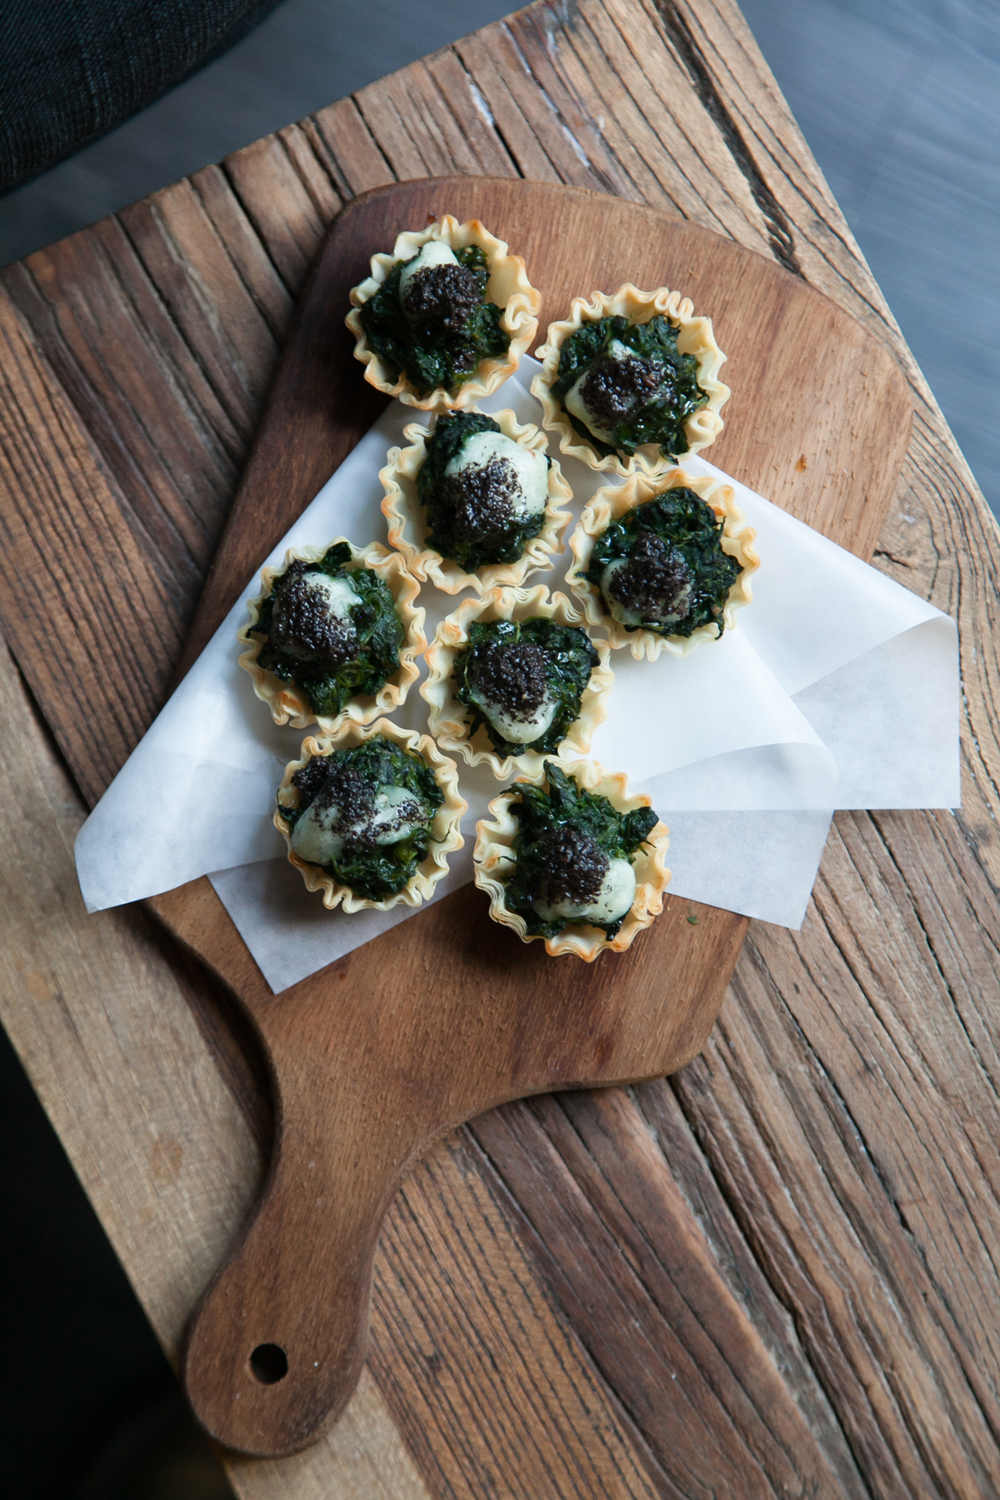 Hong Kong Restaurant and Bar Photographer // Canapés at Topiary